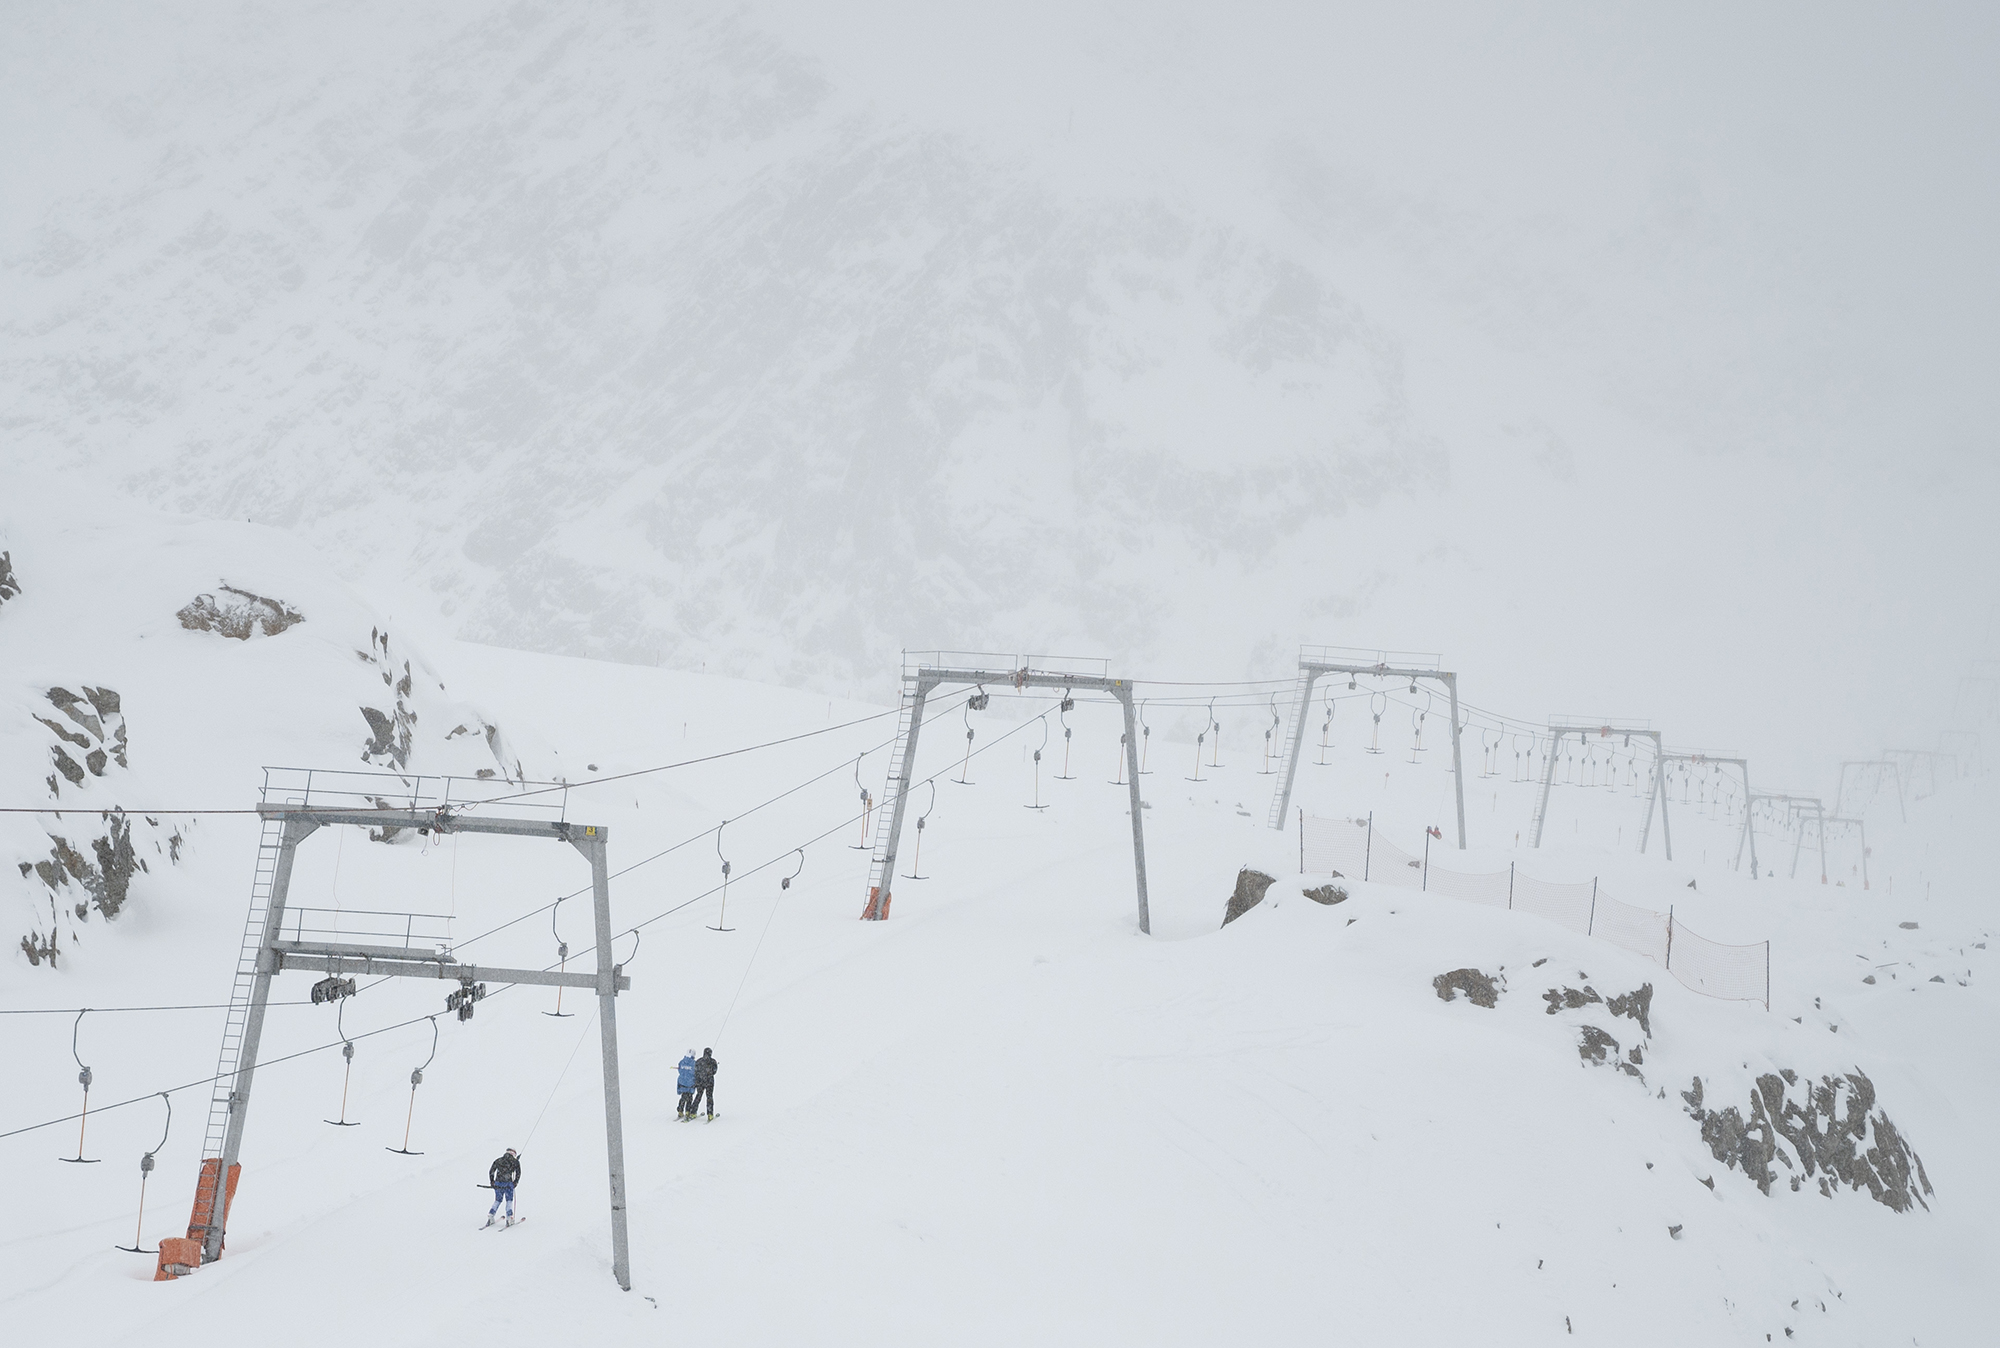 A handful of skiers take their ride empty ski lift at Pitztal glacier, Austria